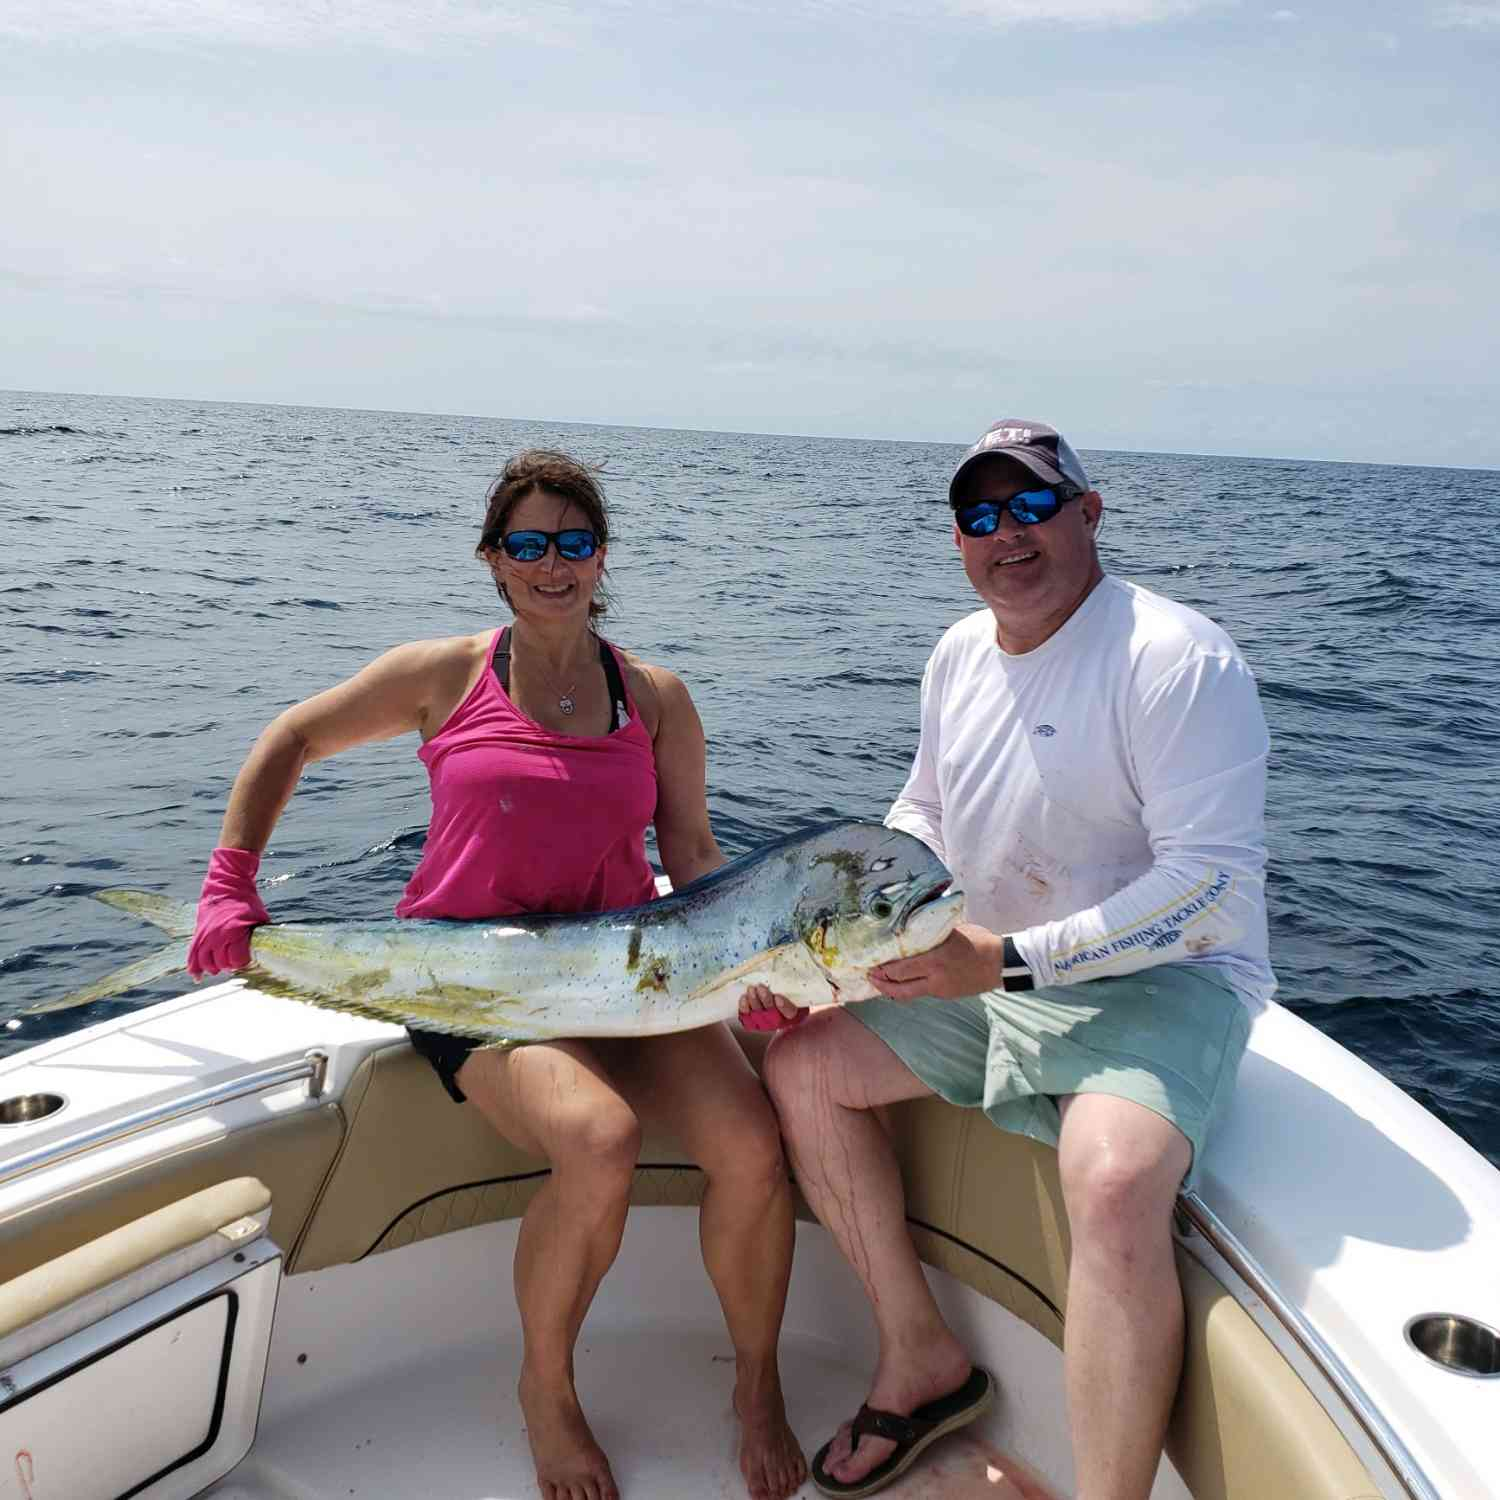 Title: Mother's Day Mahi-Mahi - On board their Sportsman Heritage 231 Center Console - Location: Charleston, SC. Participating in the Photo Contest #SportsmanJune2019